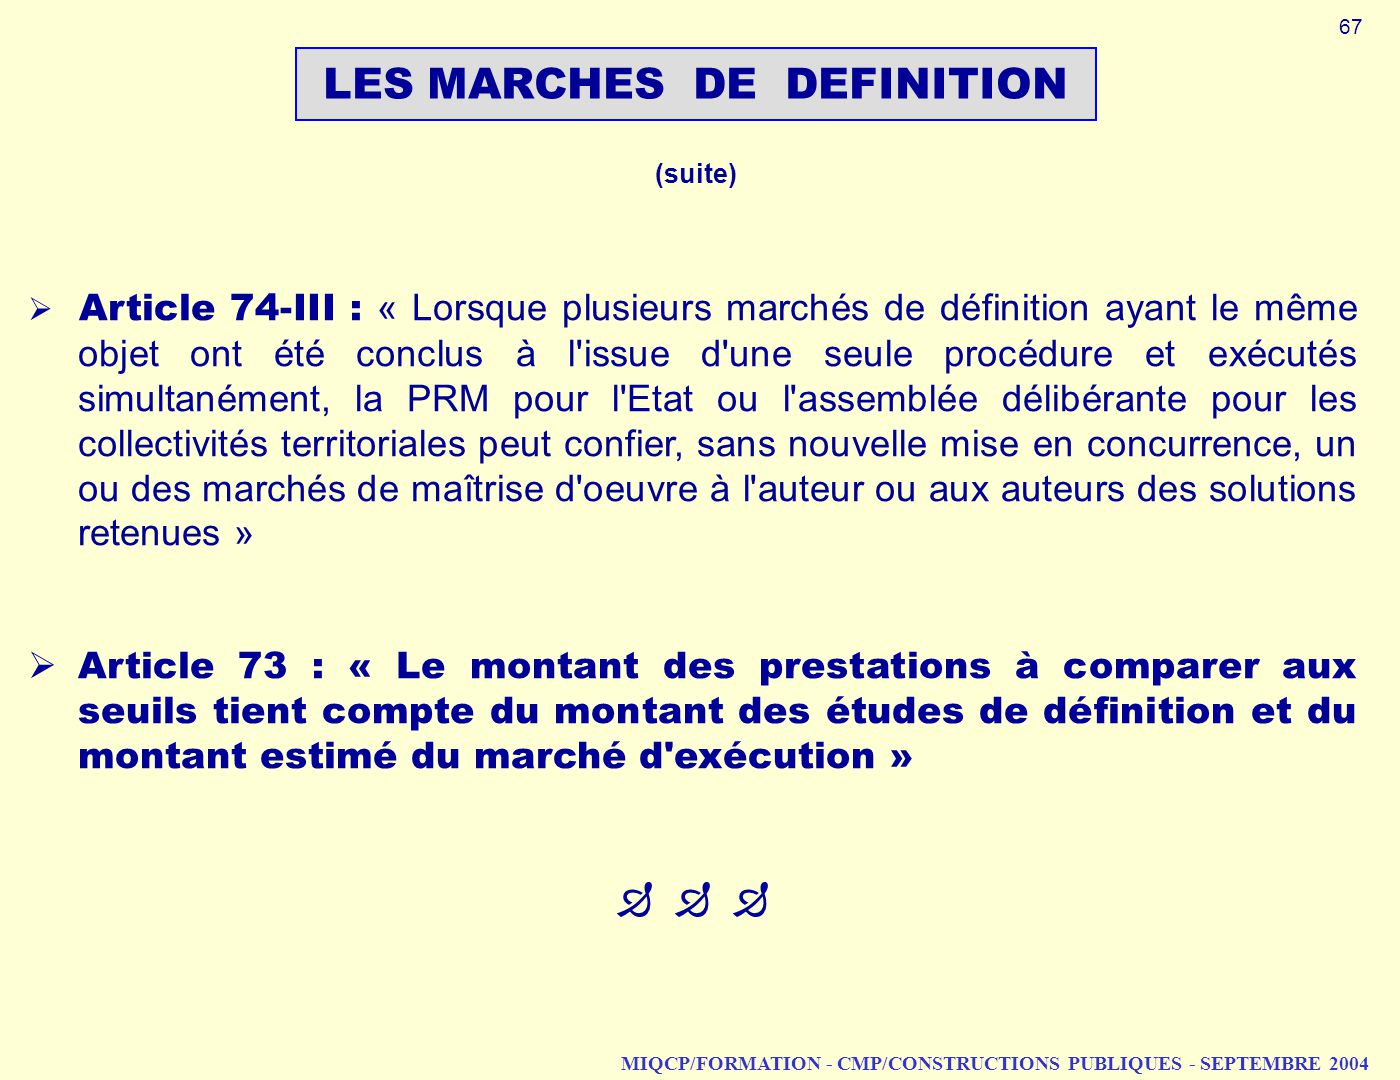 LES MARCHES DE DEFINITION